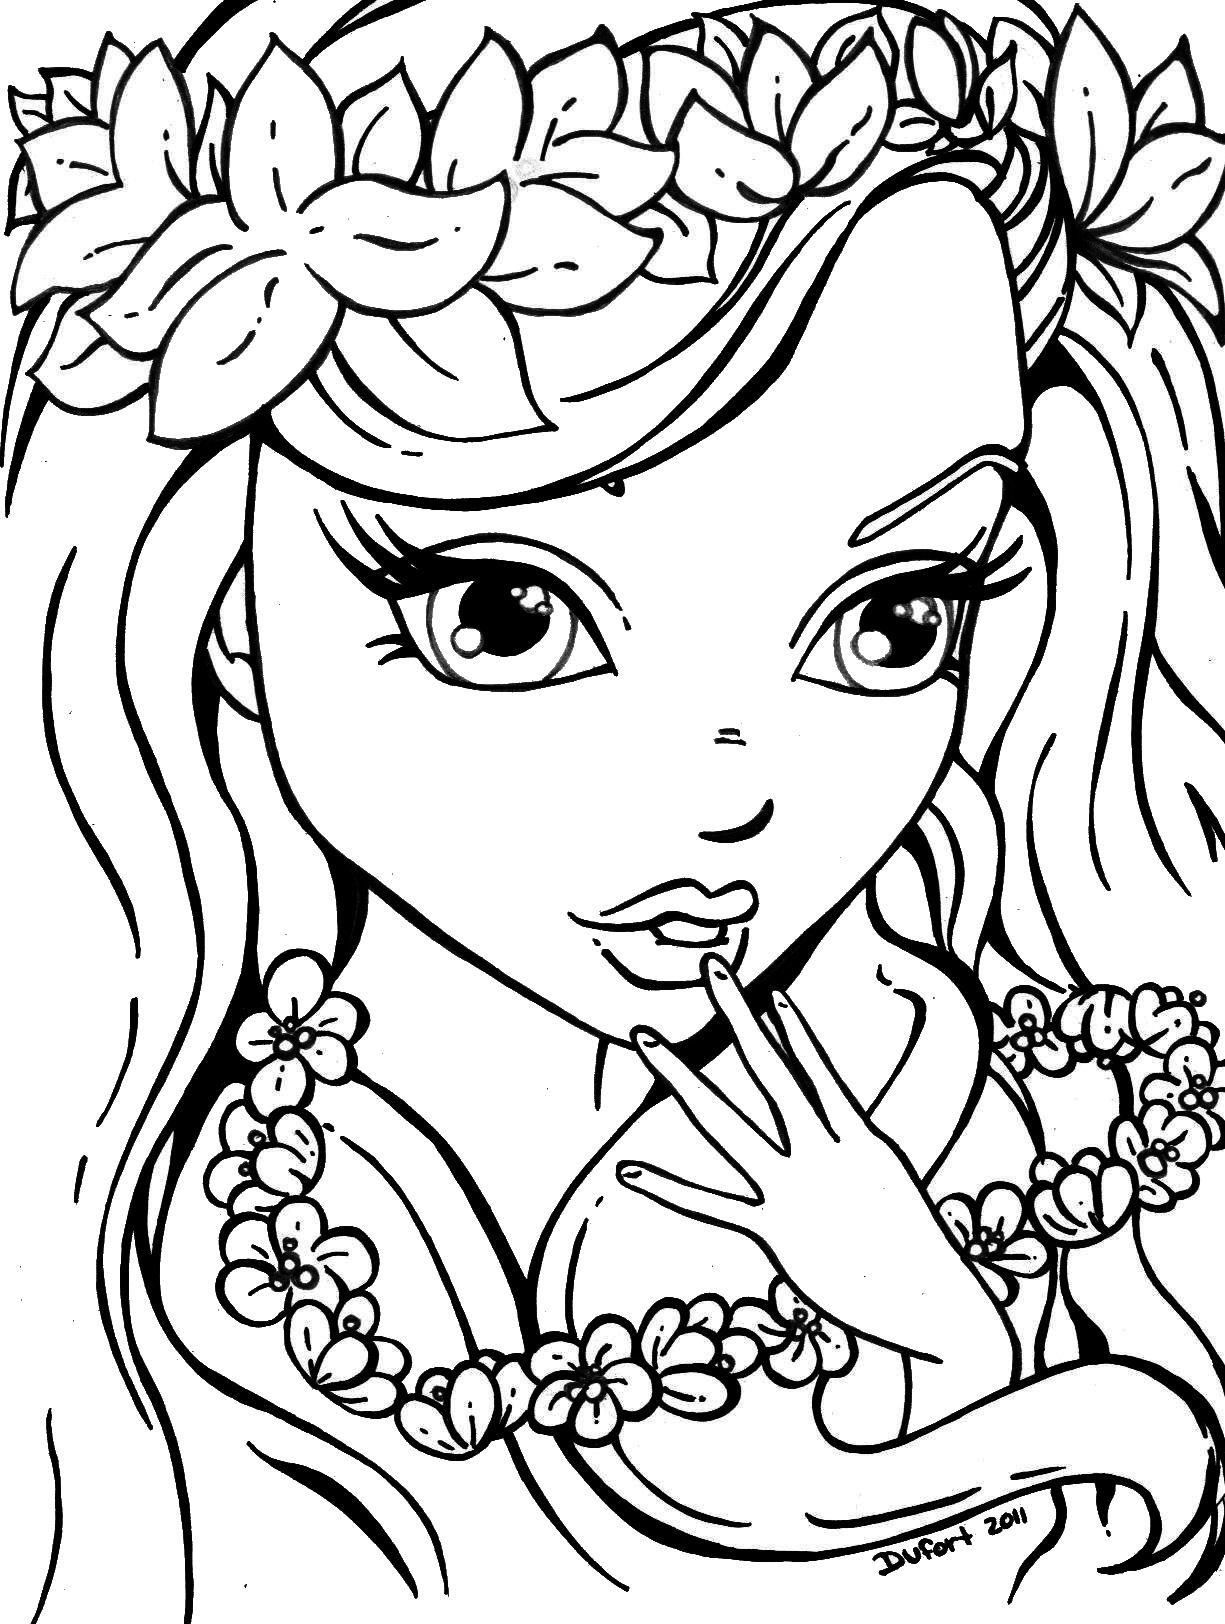 coloring pages girl coloring pages for teen girls | Colorings | Pinterest | Coloring  coloring pages girl